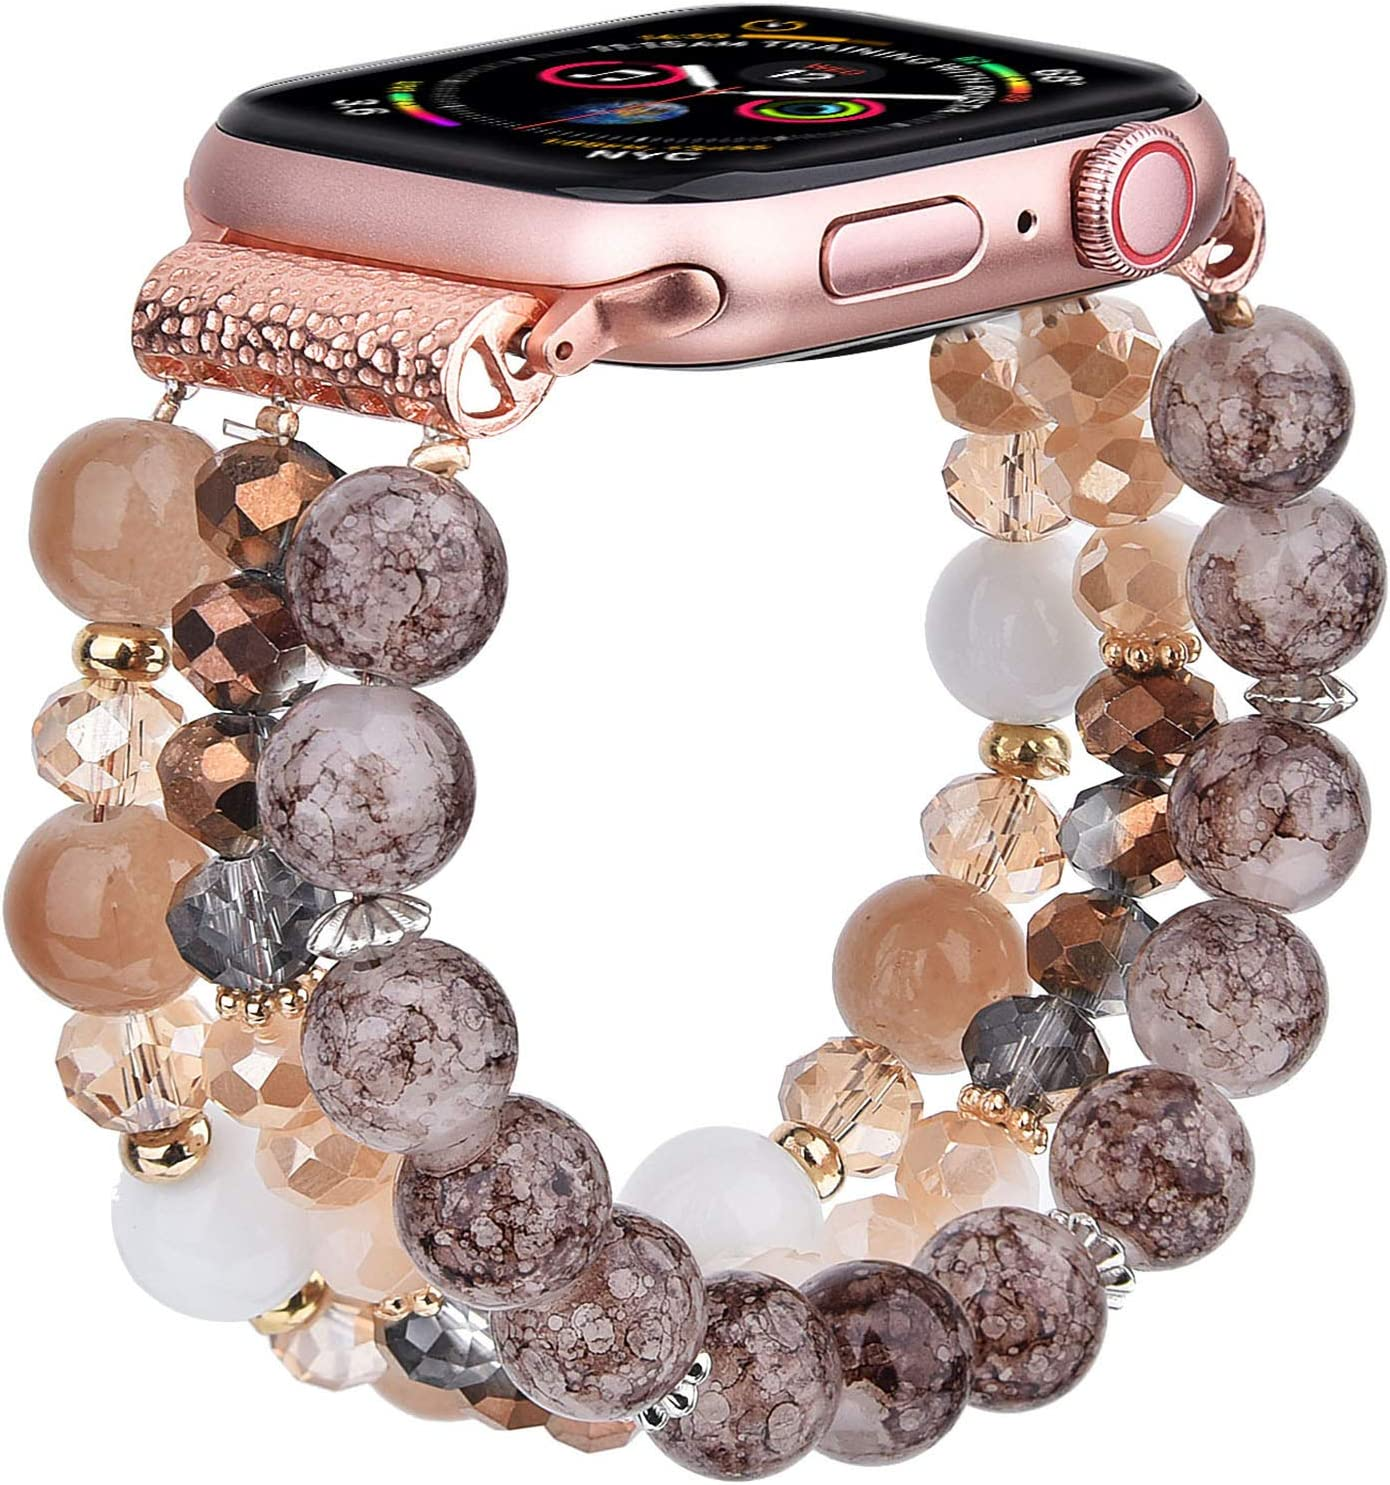 CAGOS Bracelet Beadeds Compatible with Apple Watch Band 42mm/44mm Series 6/5/4/3/2/1 Cute Handmade Fashion Elastic Stretch Beaded Strap Replacement with Stainless Steel Adapter for iWatch Amber